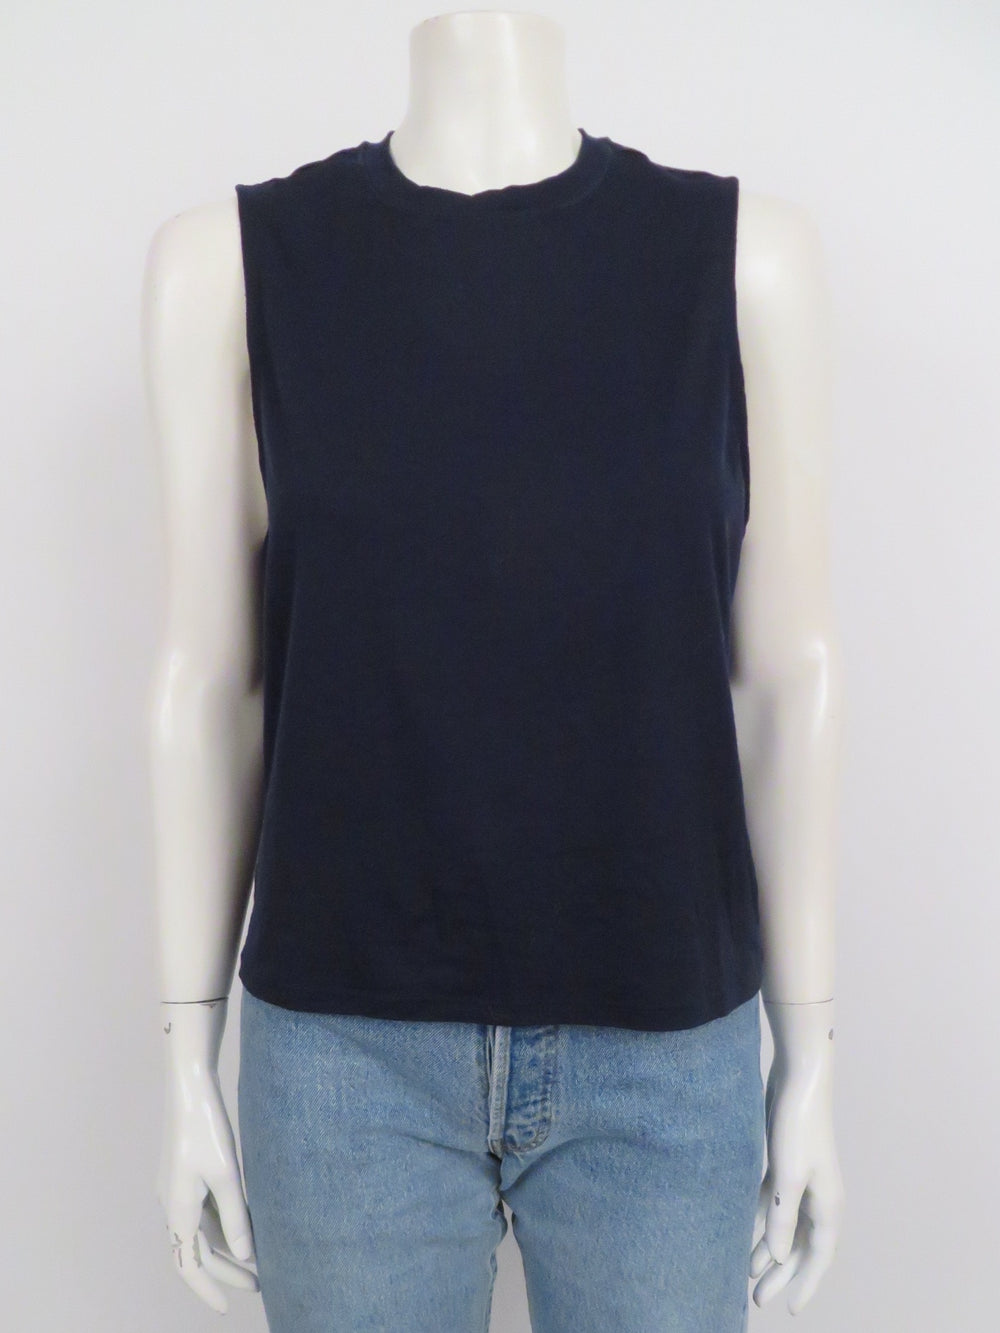 outdoor voices midnight blue athletic t-shirt. features classic sleeveless silhouette with crew neckline.